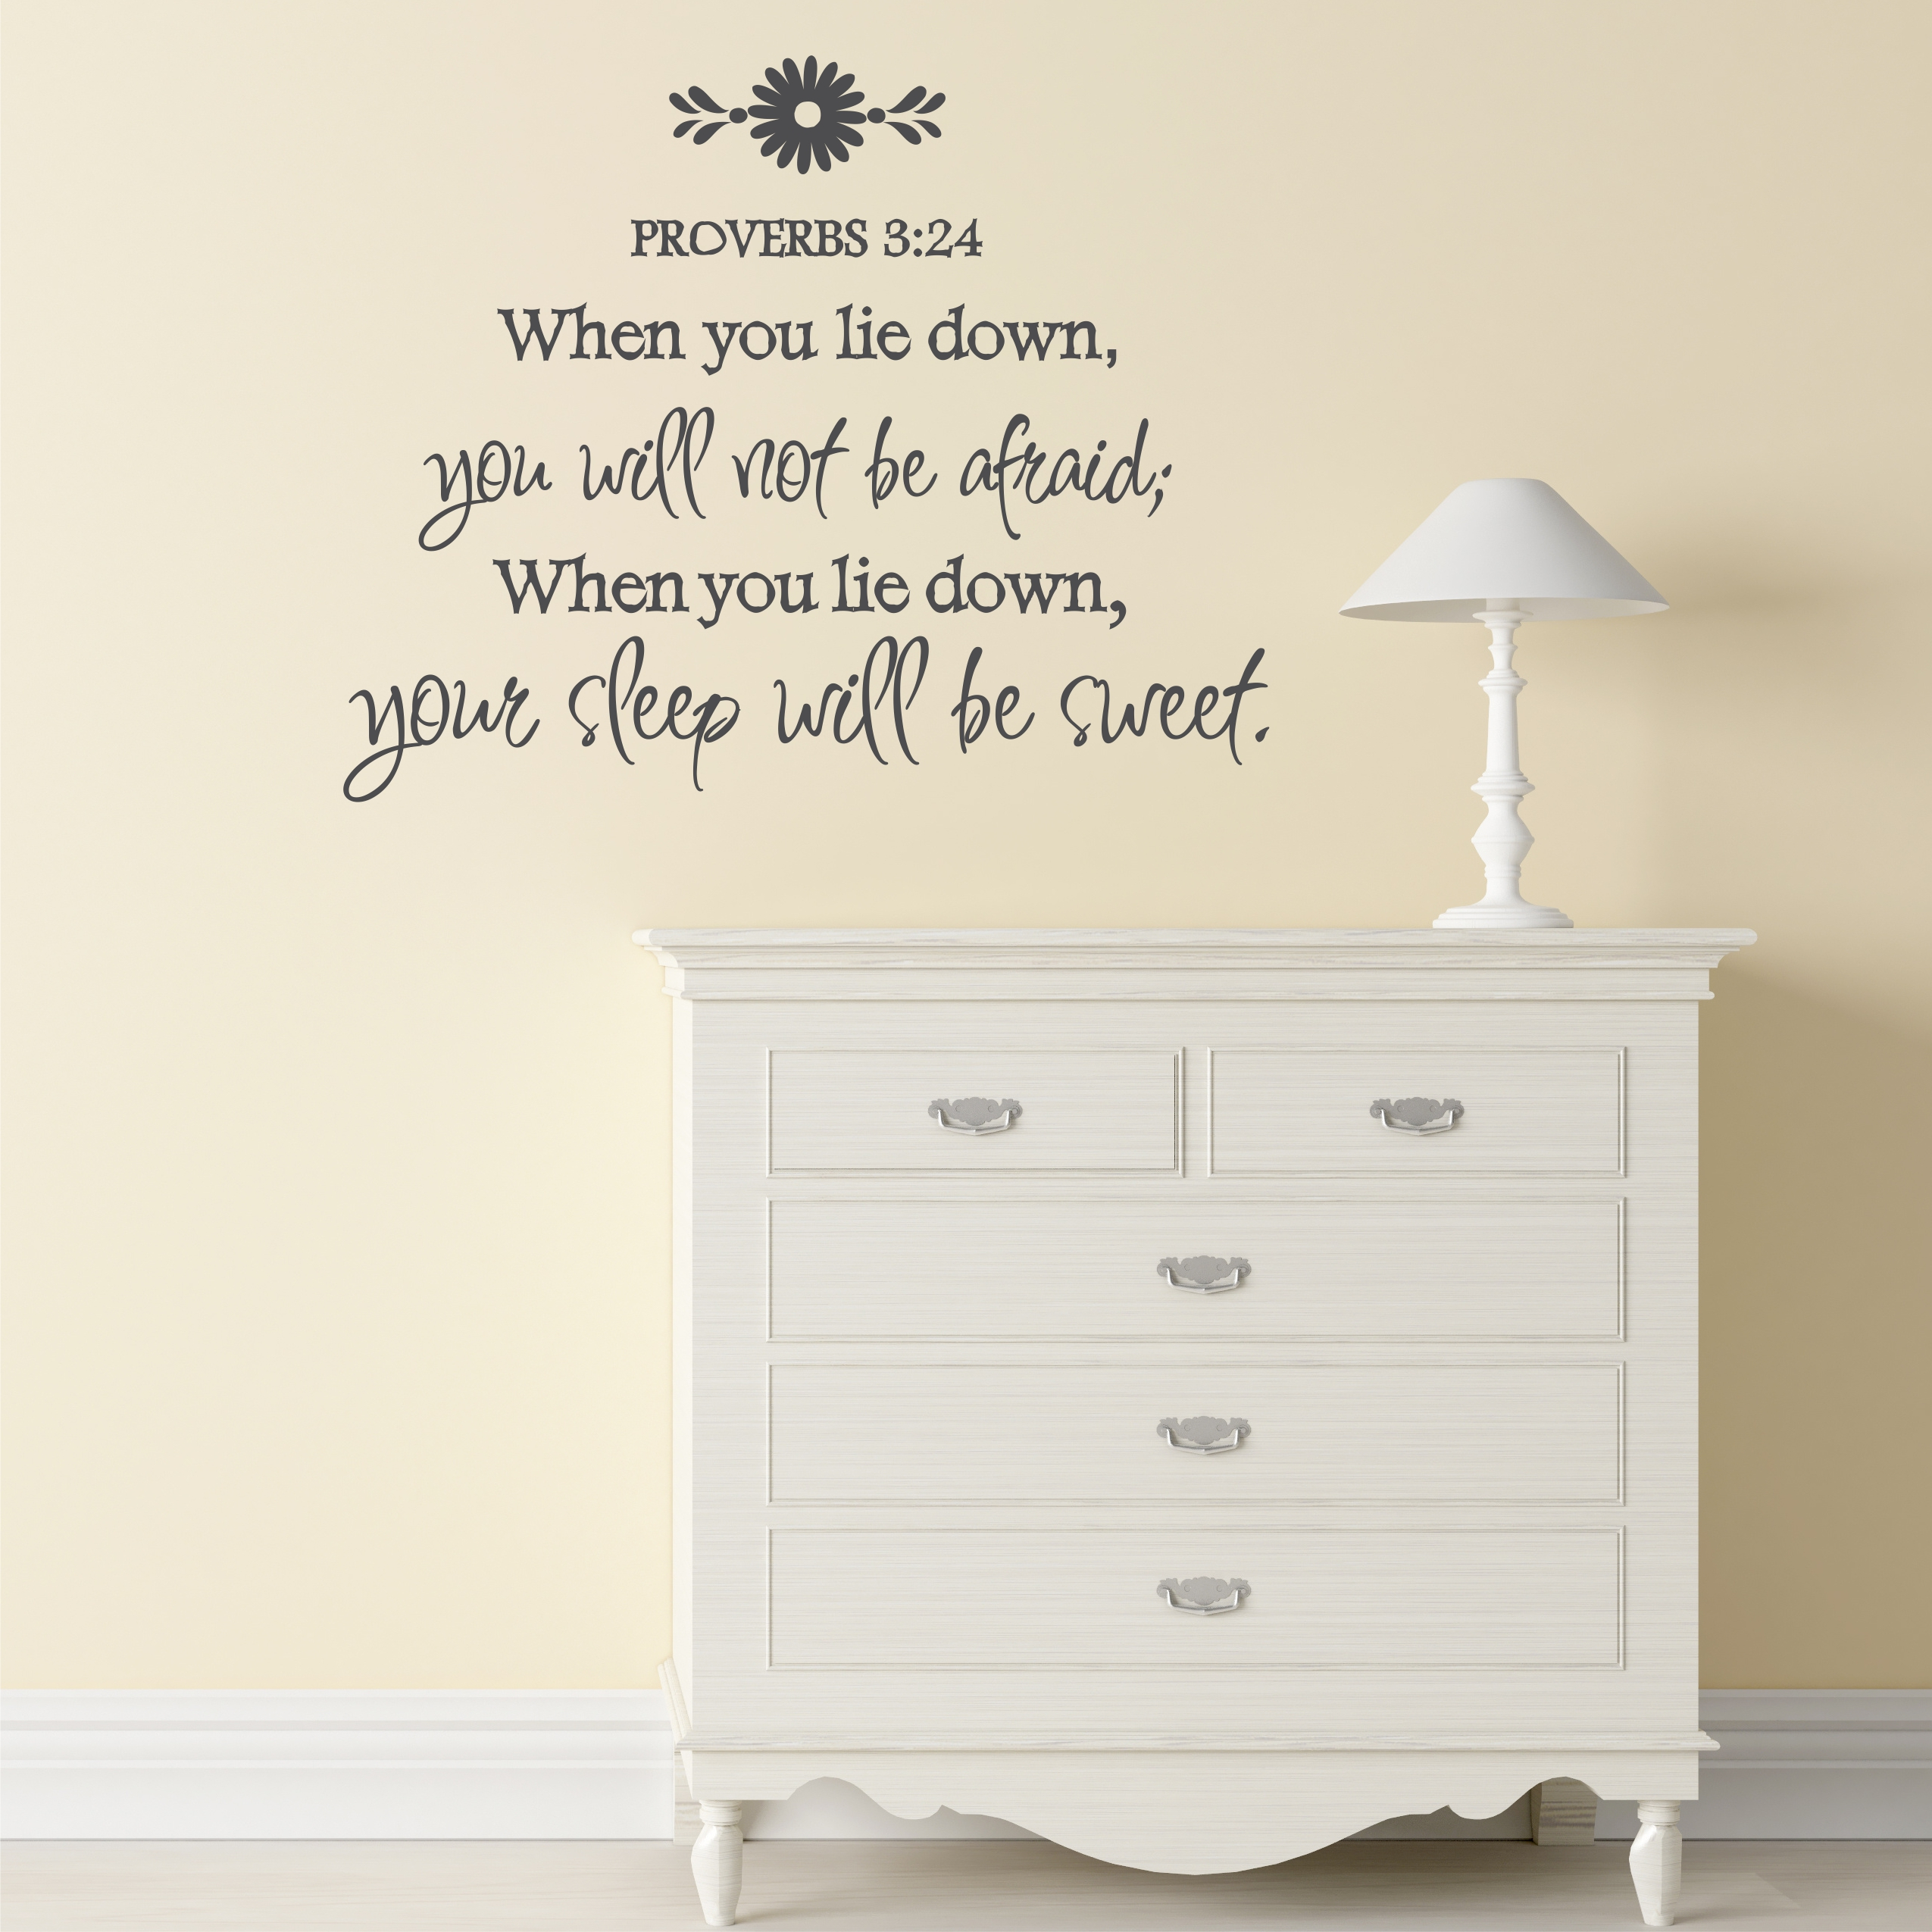 Proverbs 324 when you sleep you will not be afraid wall decal proverbs amipublicfo Gallery